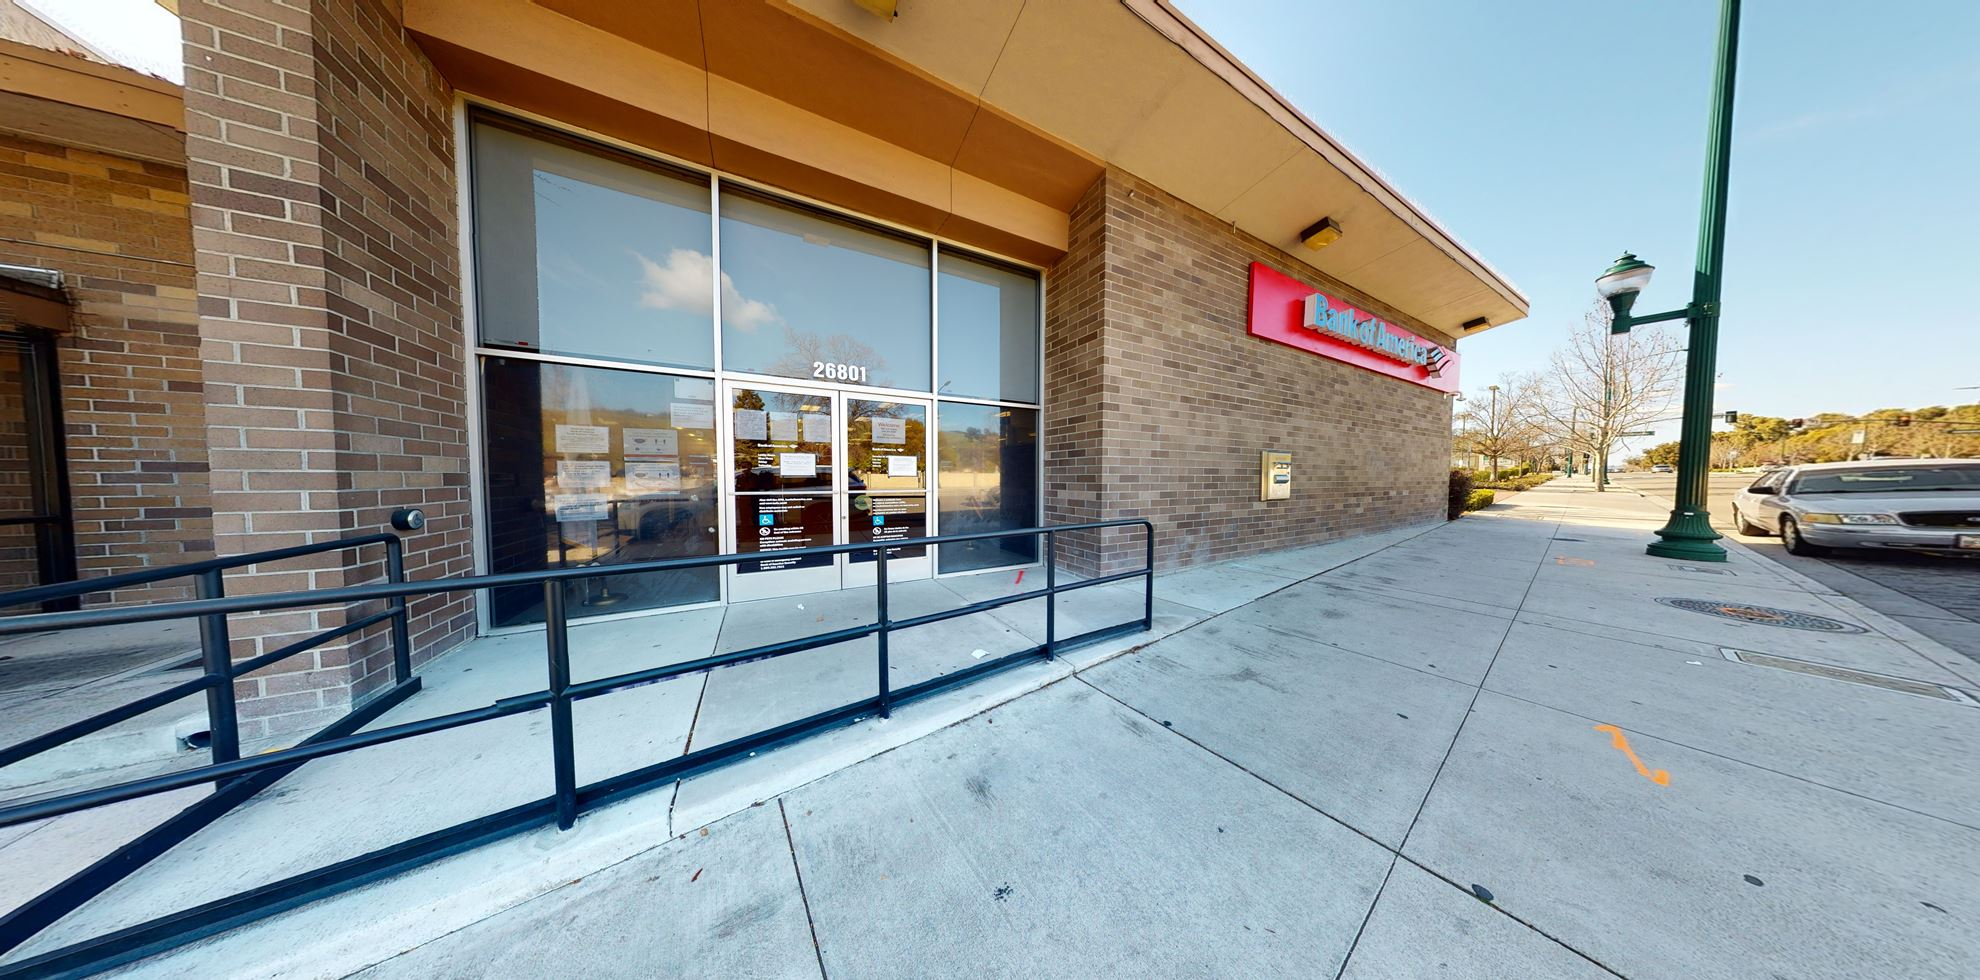 Bank of America financial center with walk-up ATM | 26801 Mission Blvd, Hayward, CA 94544